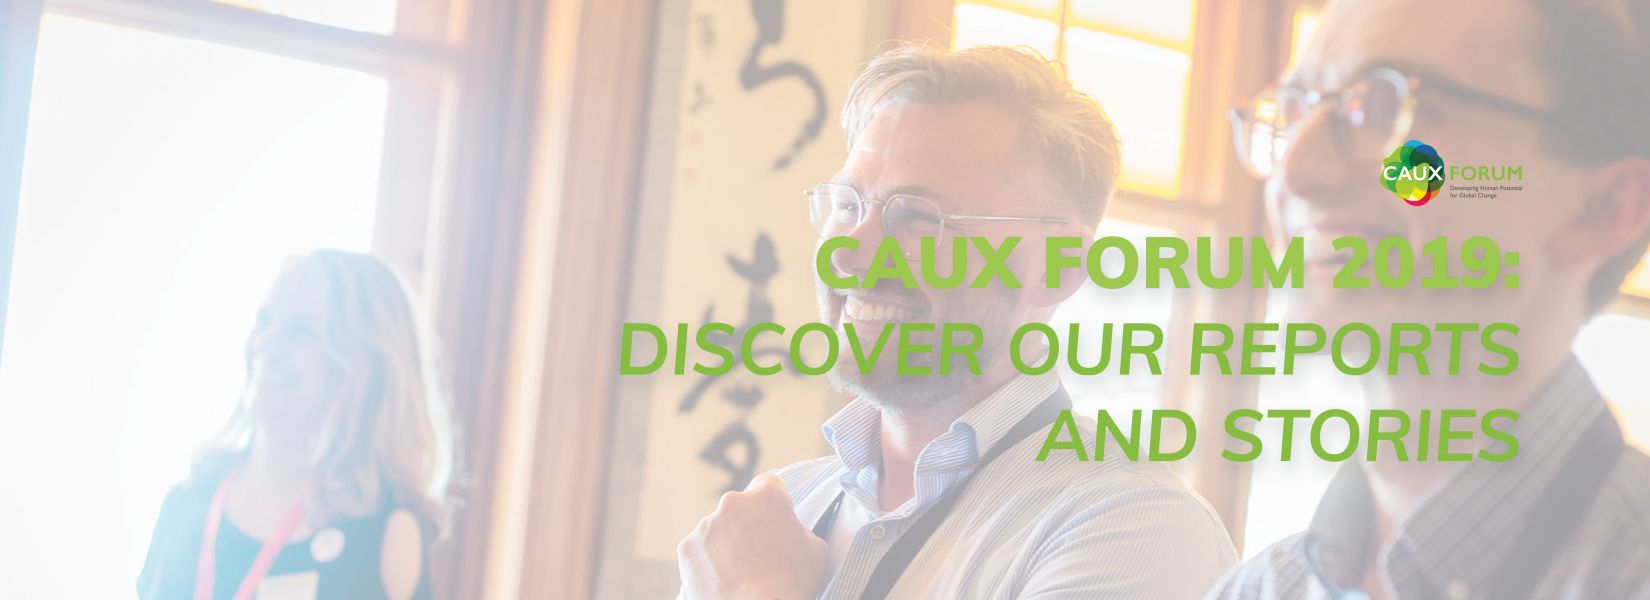 Caux Forum 2019 reports and stories slider EN